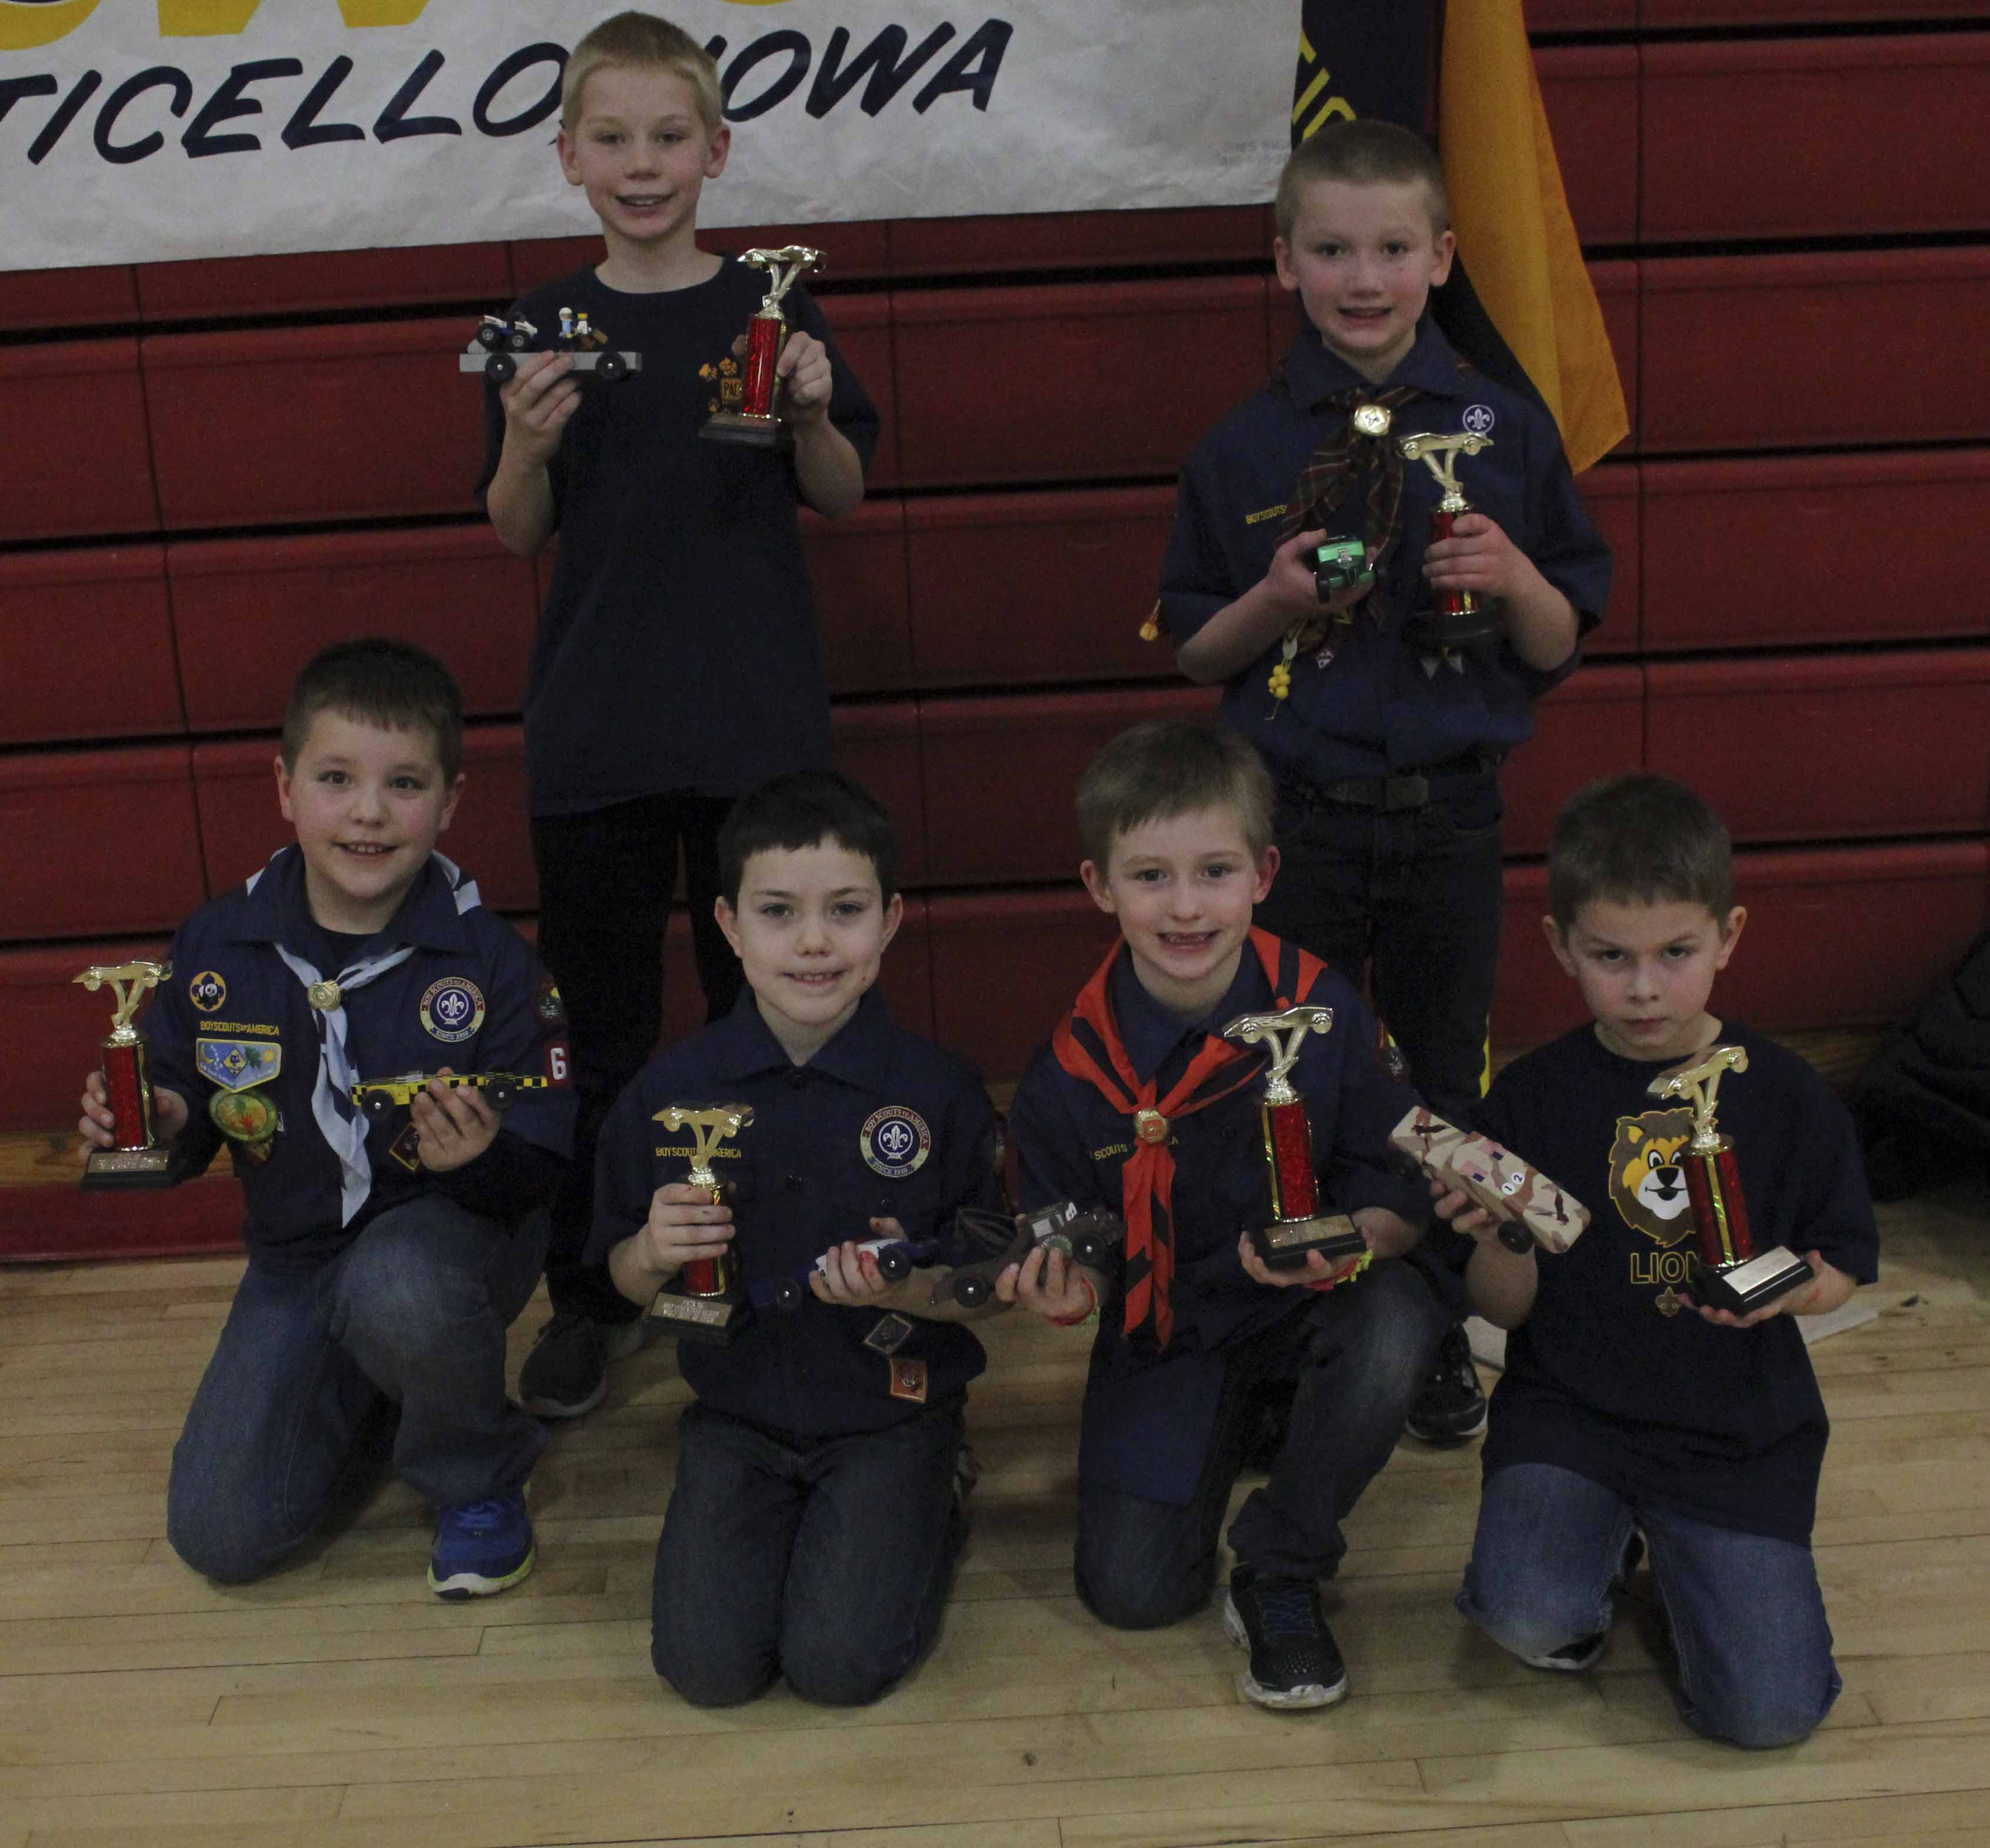 Best of Show winners included, first row from left: Keegan McElmeel, Nicholas Schrader, Branden Sharlow and Noah Fuller. Second row: Carter Martin and Ben Zirkelbach.